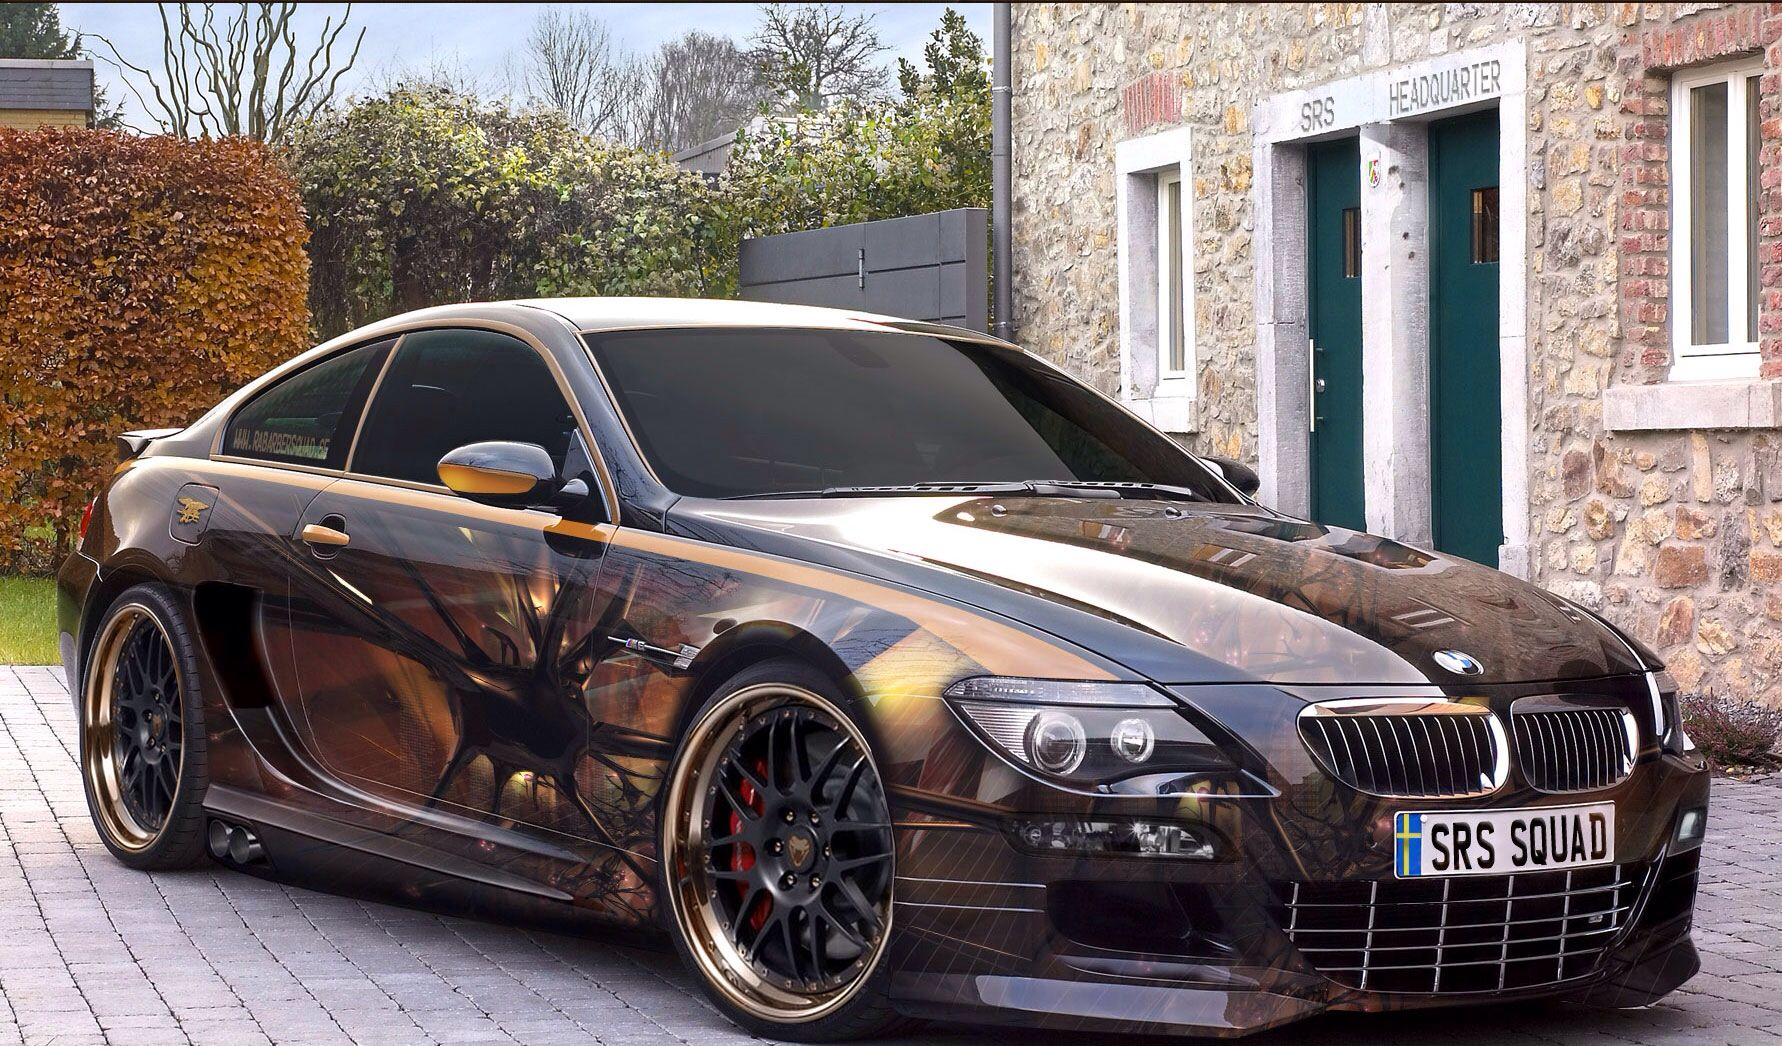 Crazy Paint Jobs Crazy Bmw Bmw Pinterest Bmw And Cars